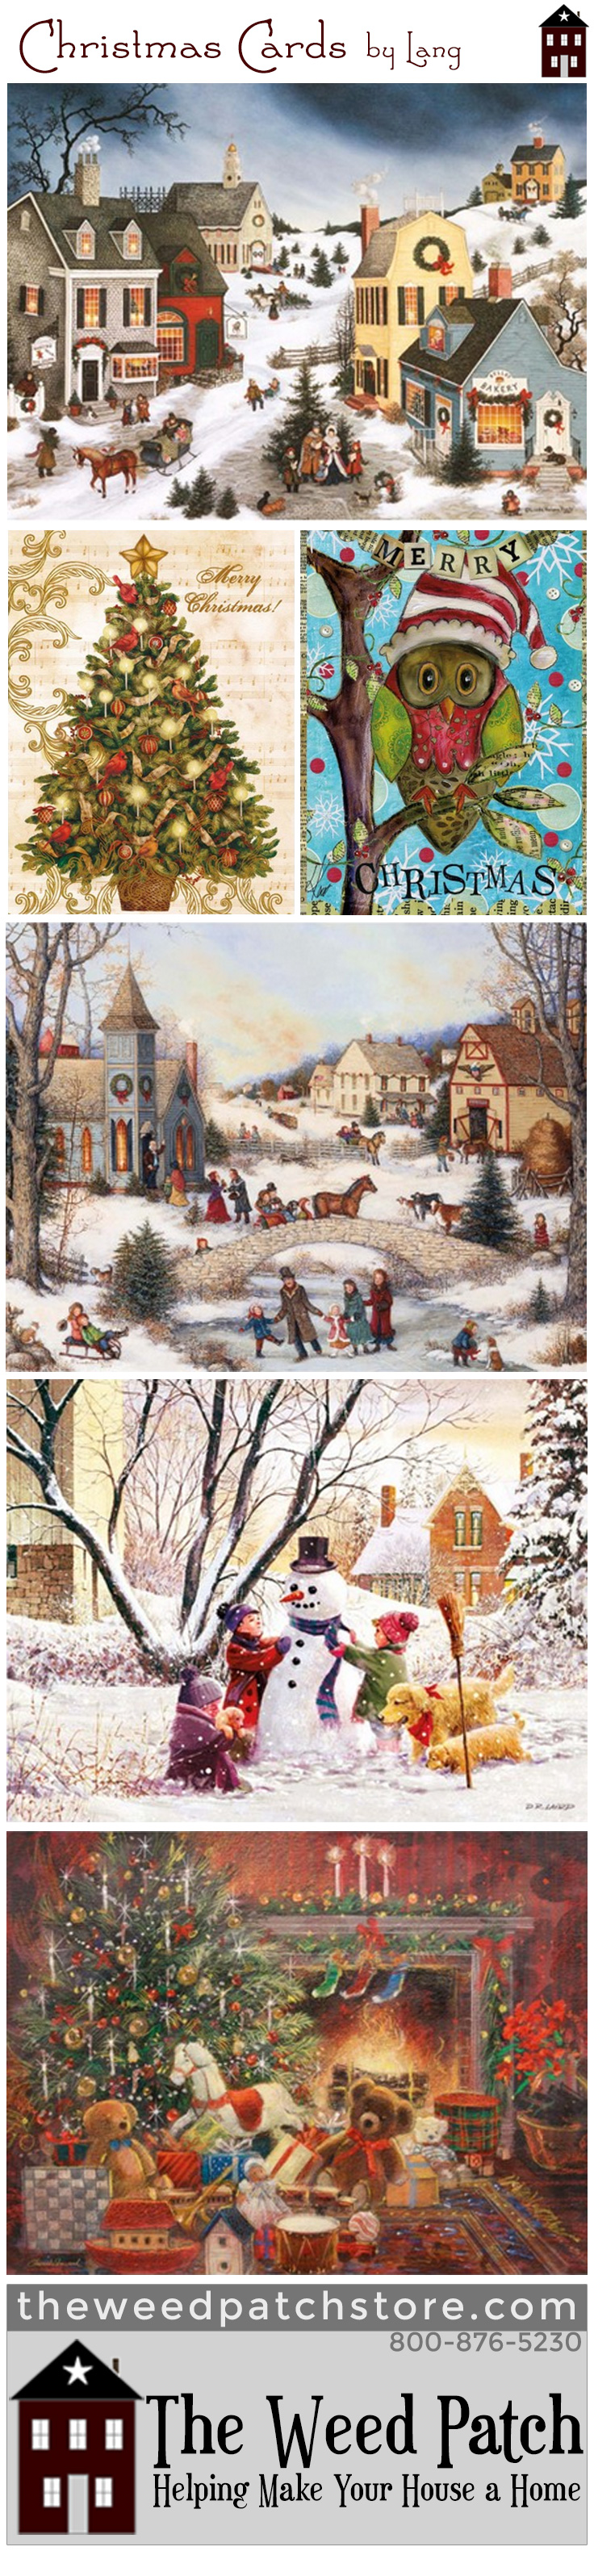 Now's the time to get your Christmas cards!  We have a large selection of Lang Christmas cards, our best selling brand that we've carried for many many years.  They feature full-color artwork inside and outside the cards, as well as the envelopes, by well-known folk artists, and come in matching keepsake boxes.  The Weed Patch - www.theweedpatchstore.com